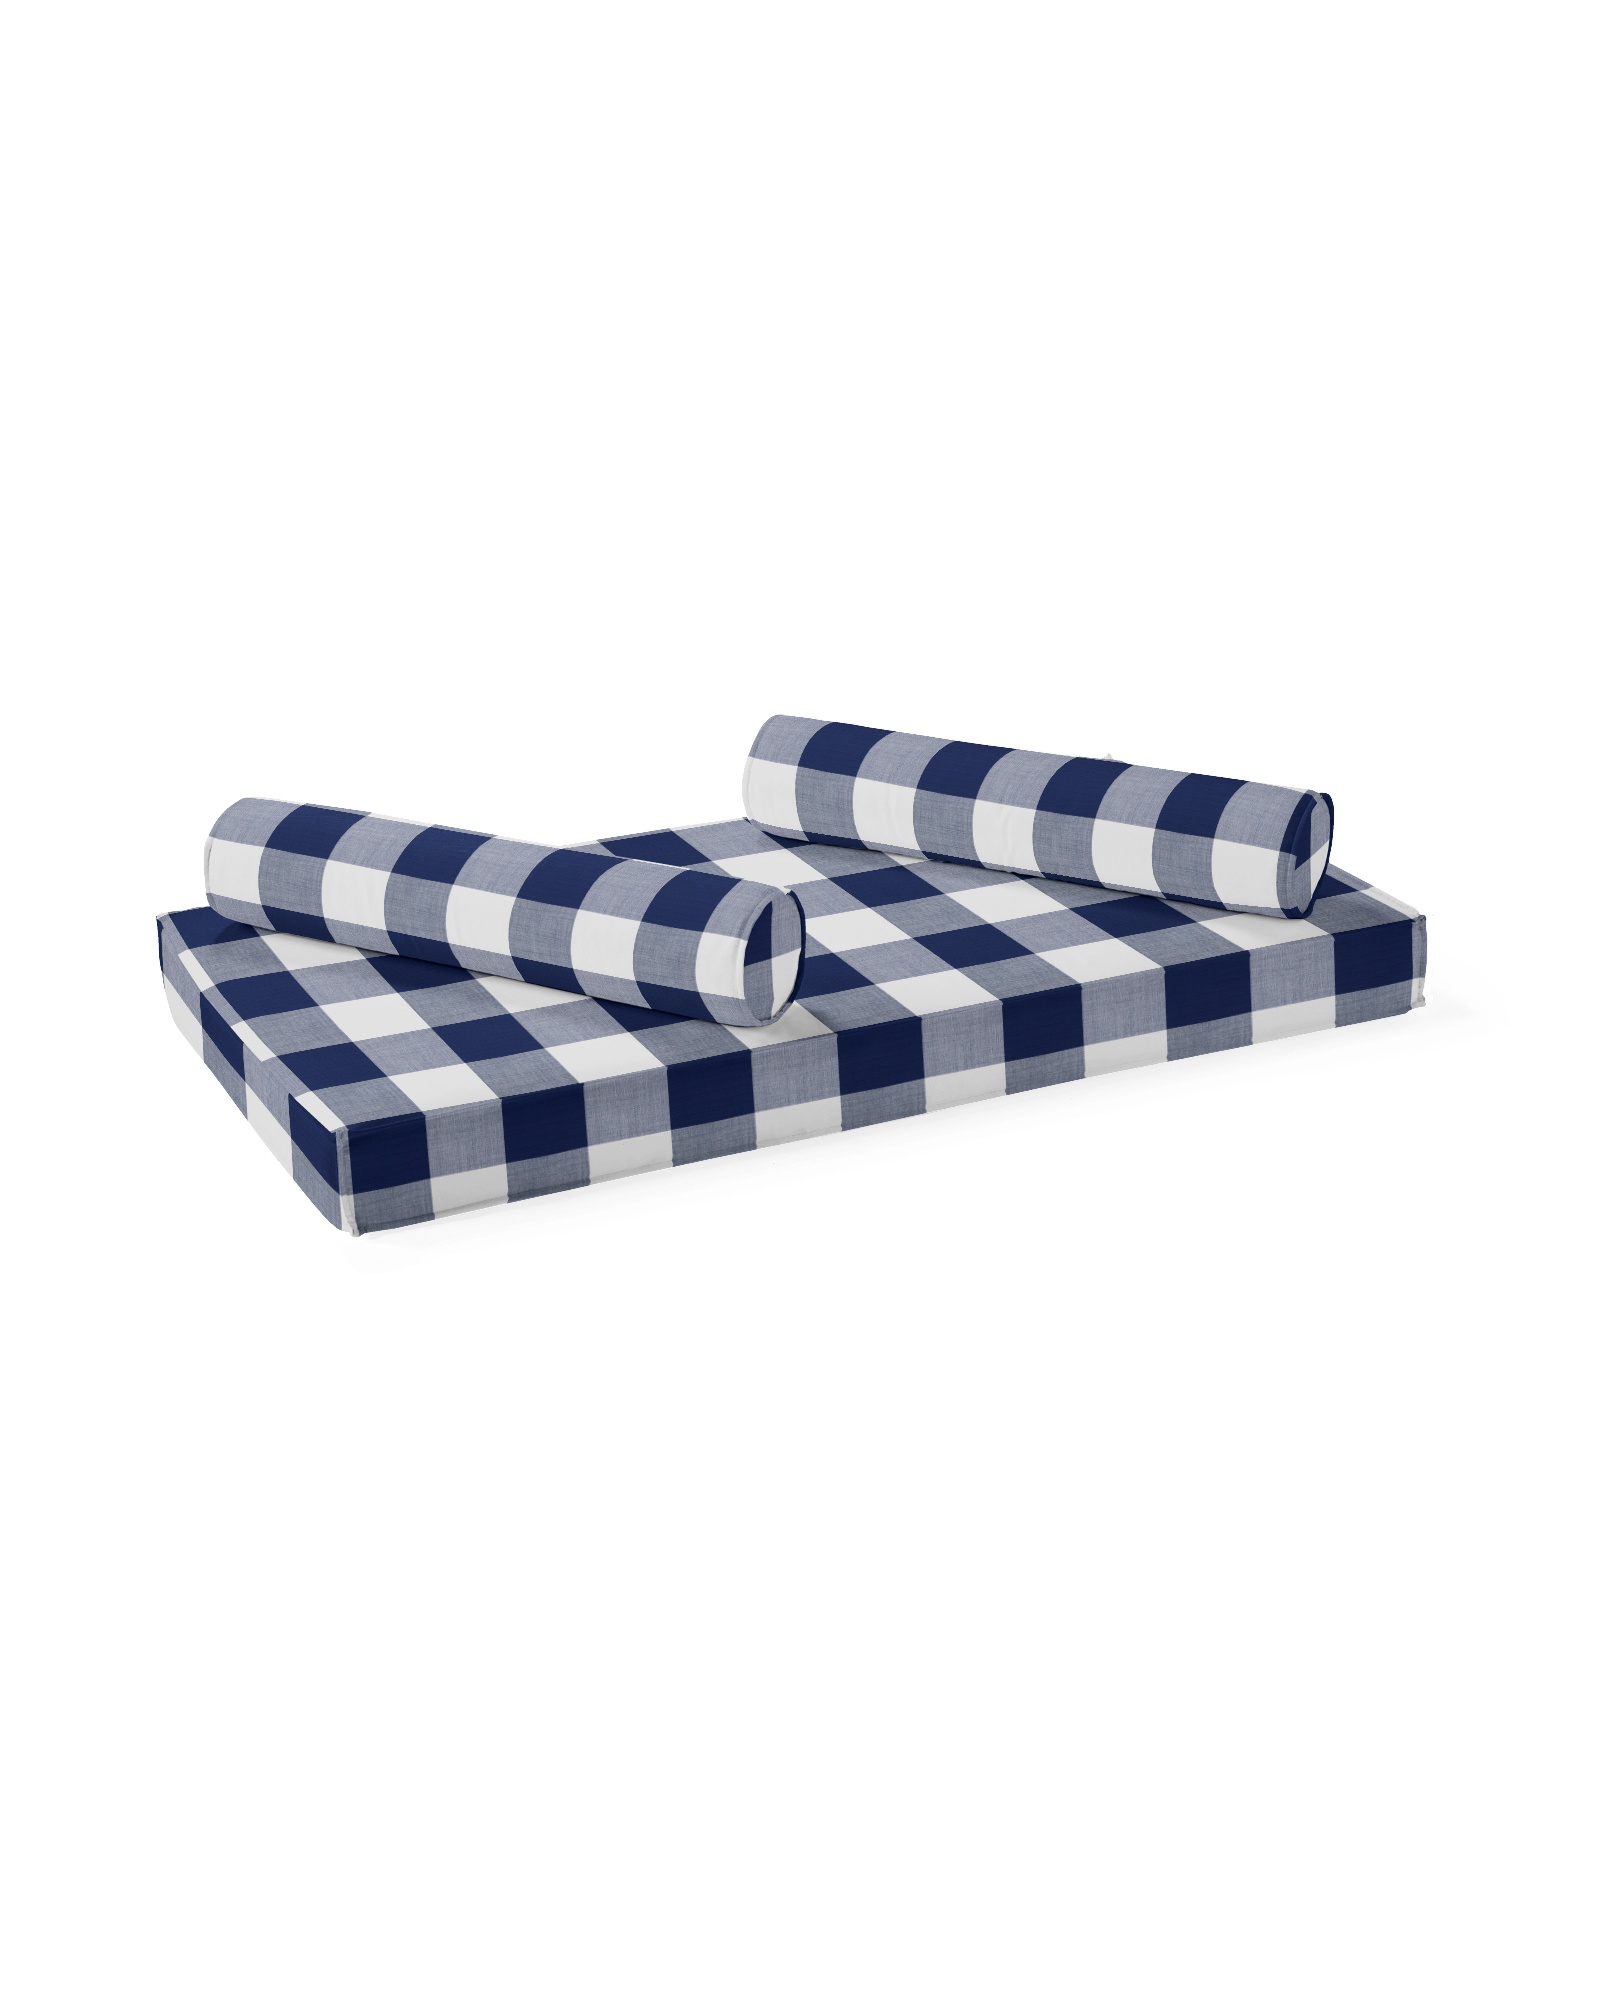 Daybed Mattress & Bolsters, Perennials Gingham Navy